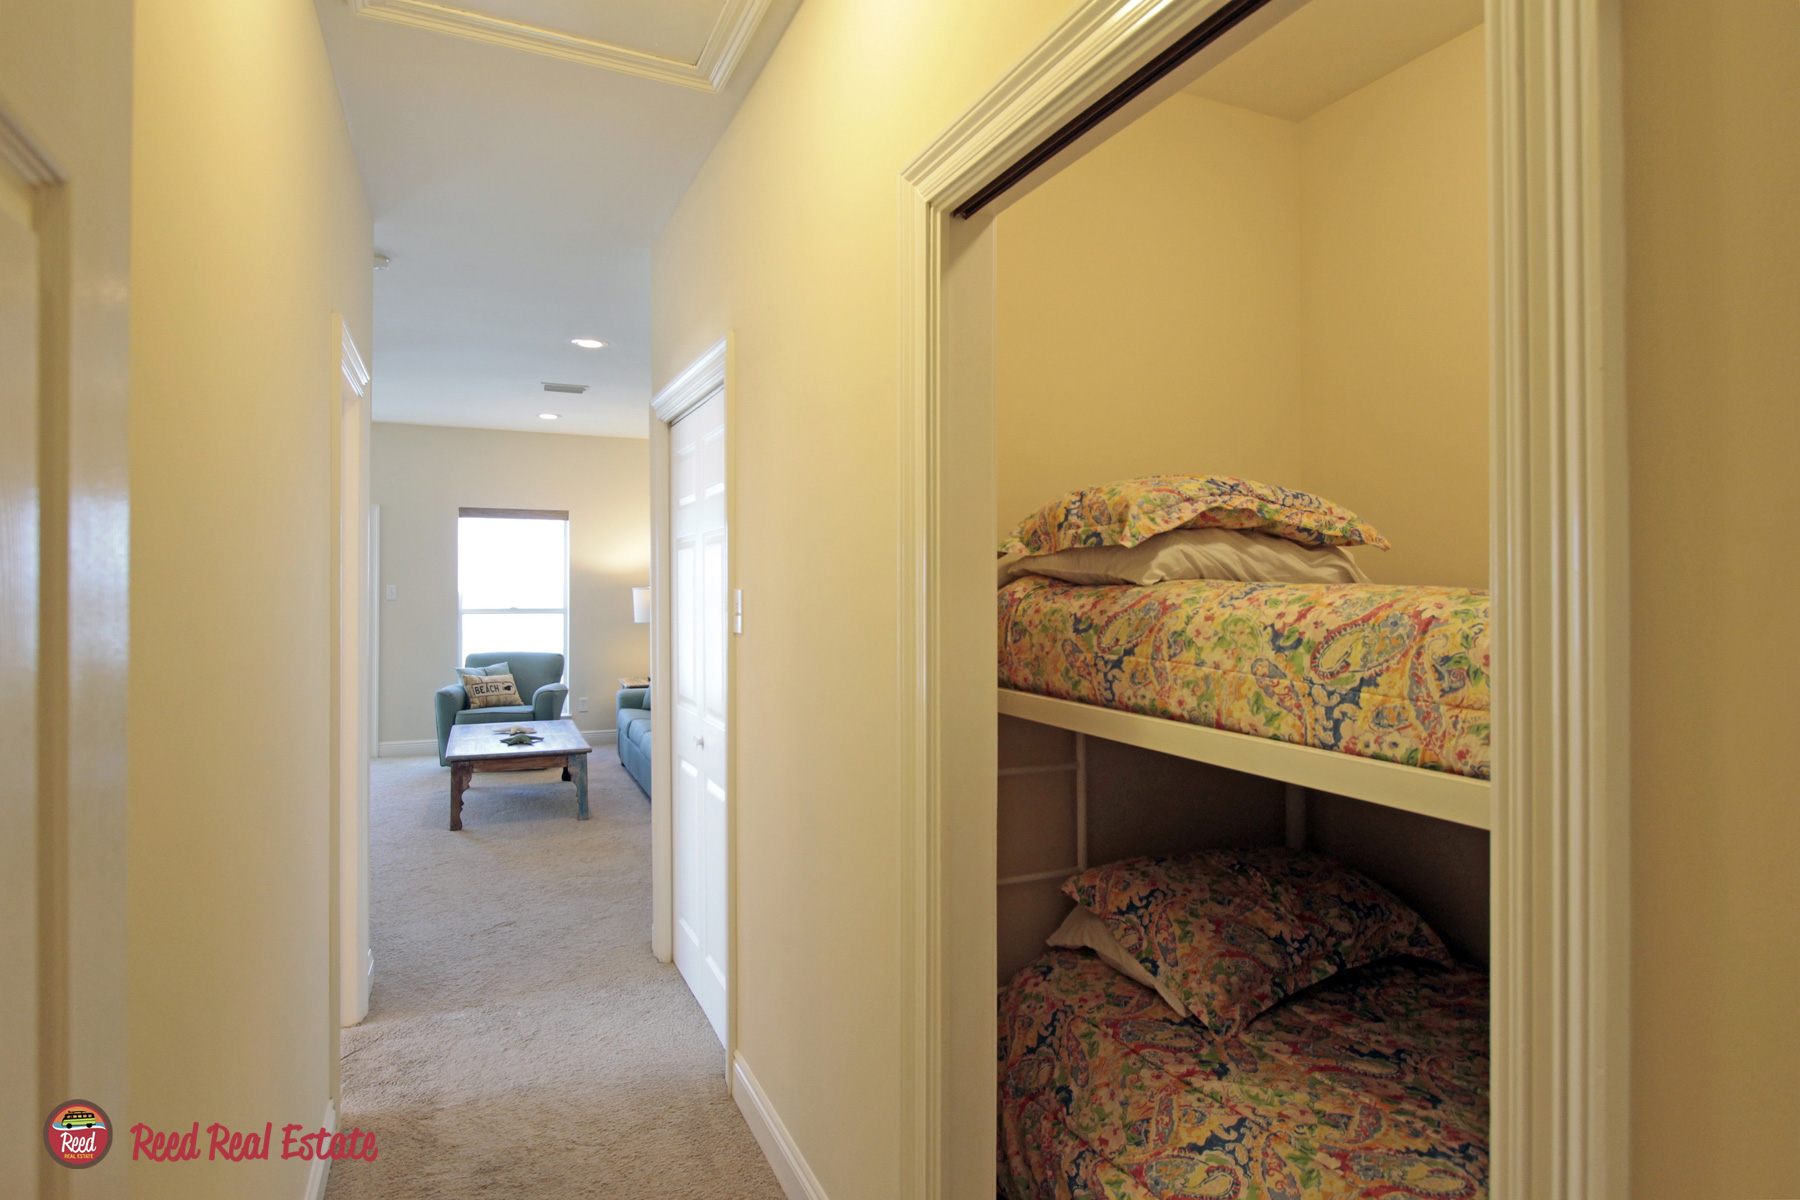 Master bedroom entry with sleeping alcove